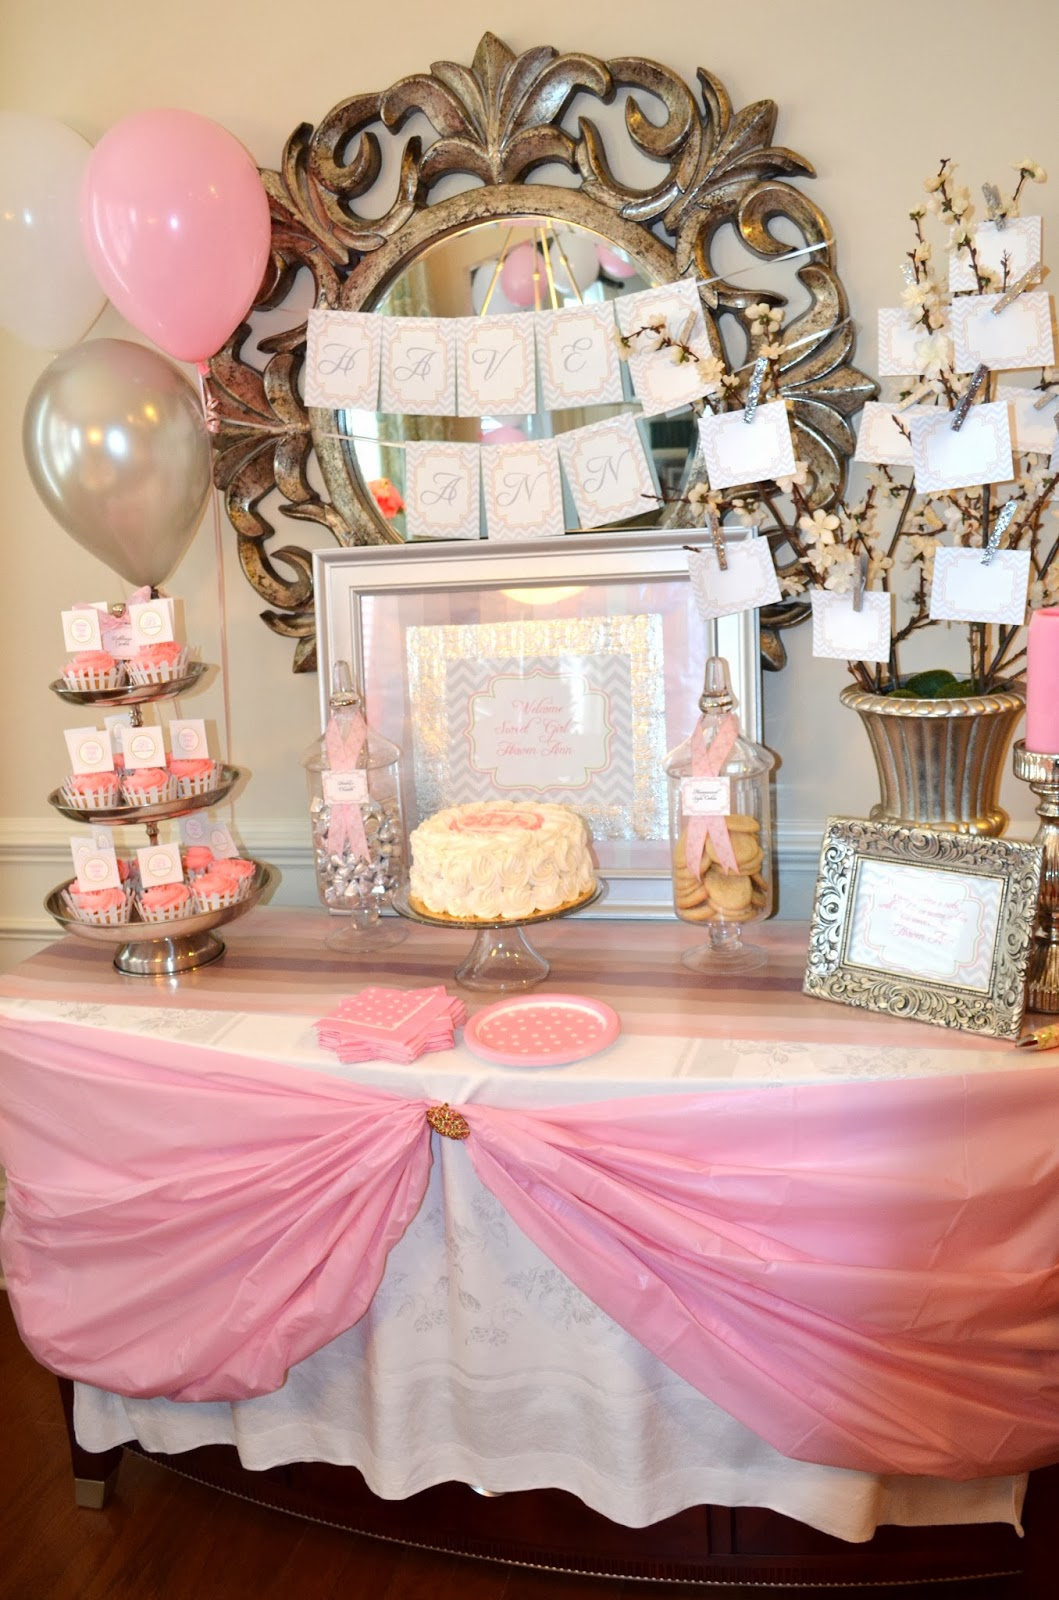 the theme included grey chevron with soft pink and silver